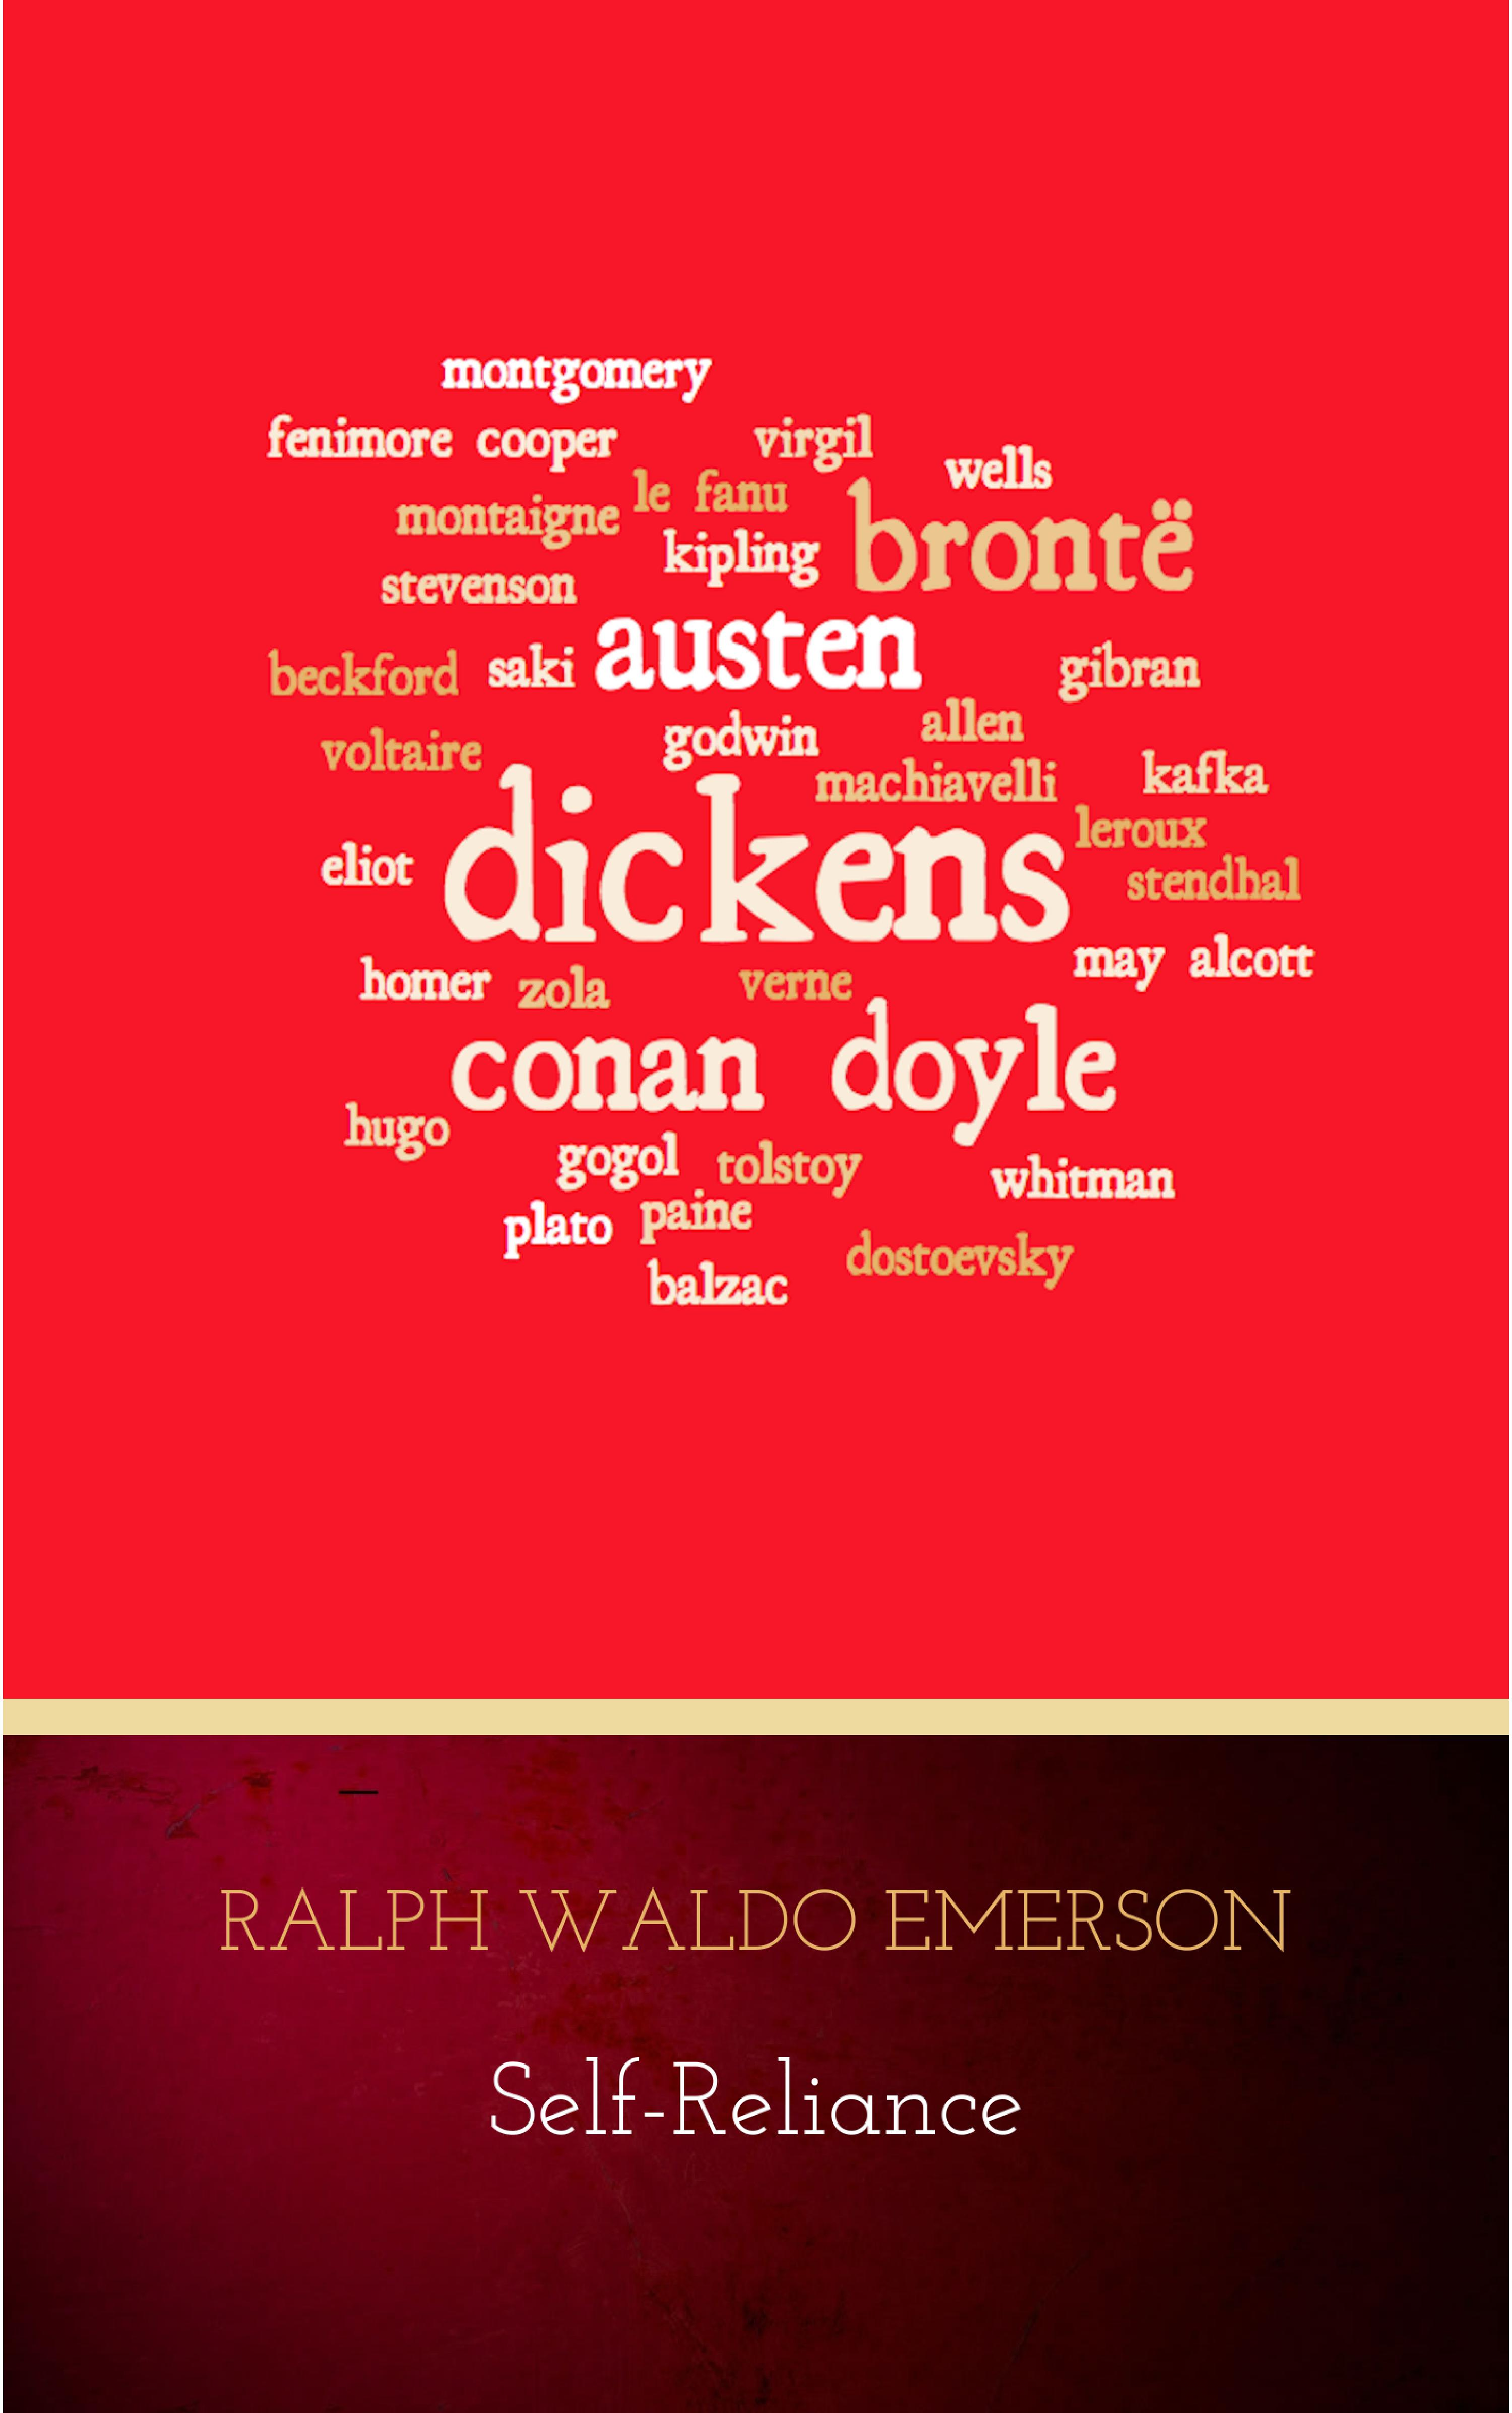 Ralph Waldo Emerson Self-Reliance: The Wisdom of Ralph Waldo Emerson as Inspiration for Daily Living emerson willis george the treasure of hidden valley